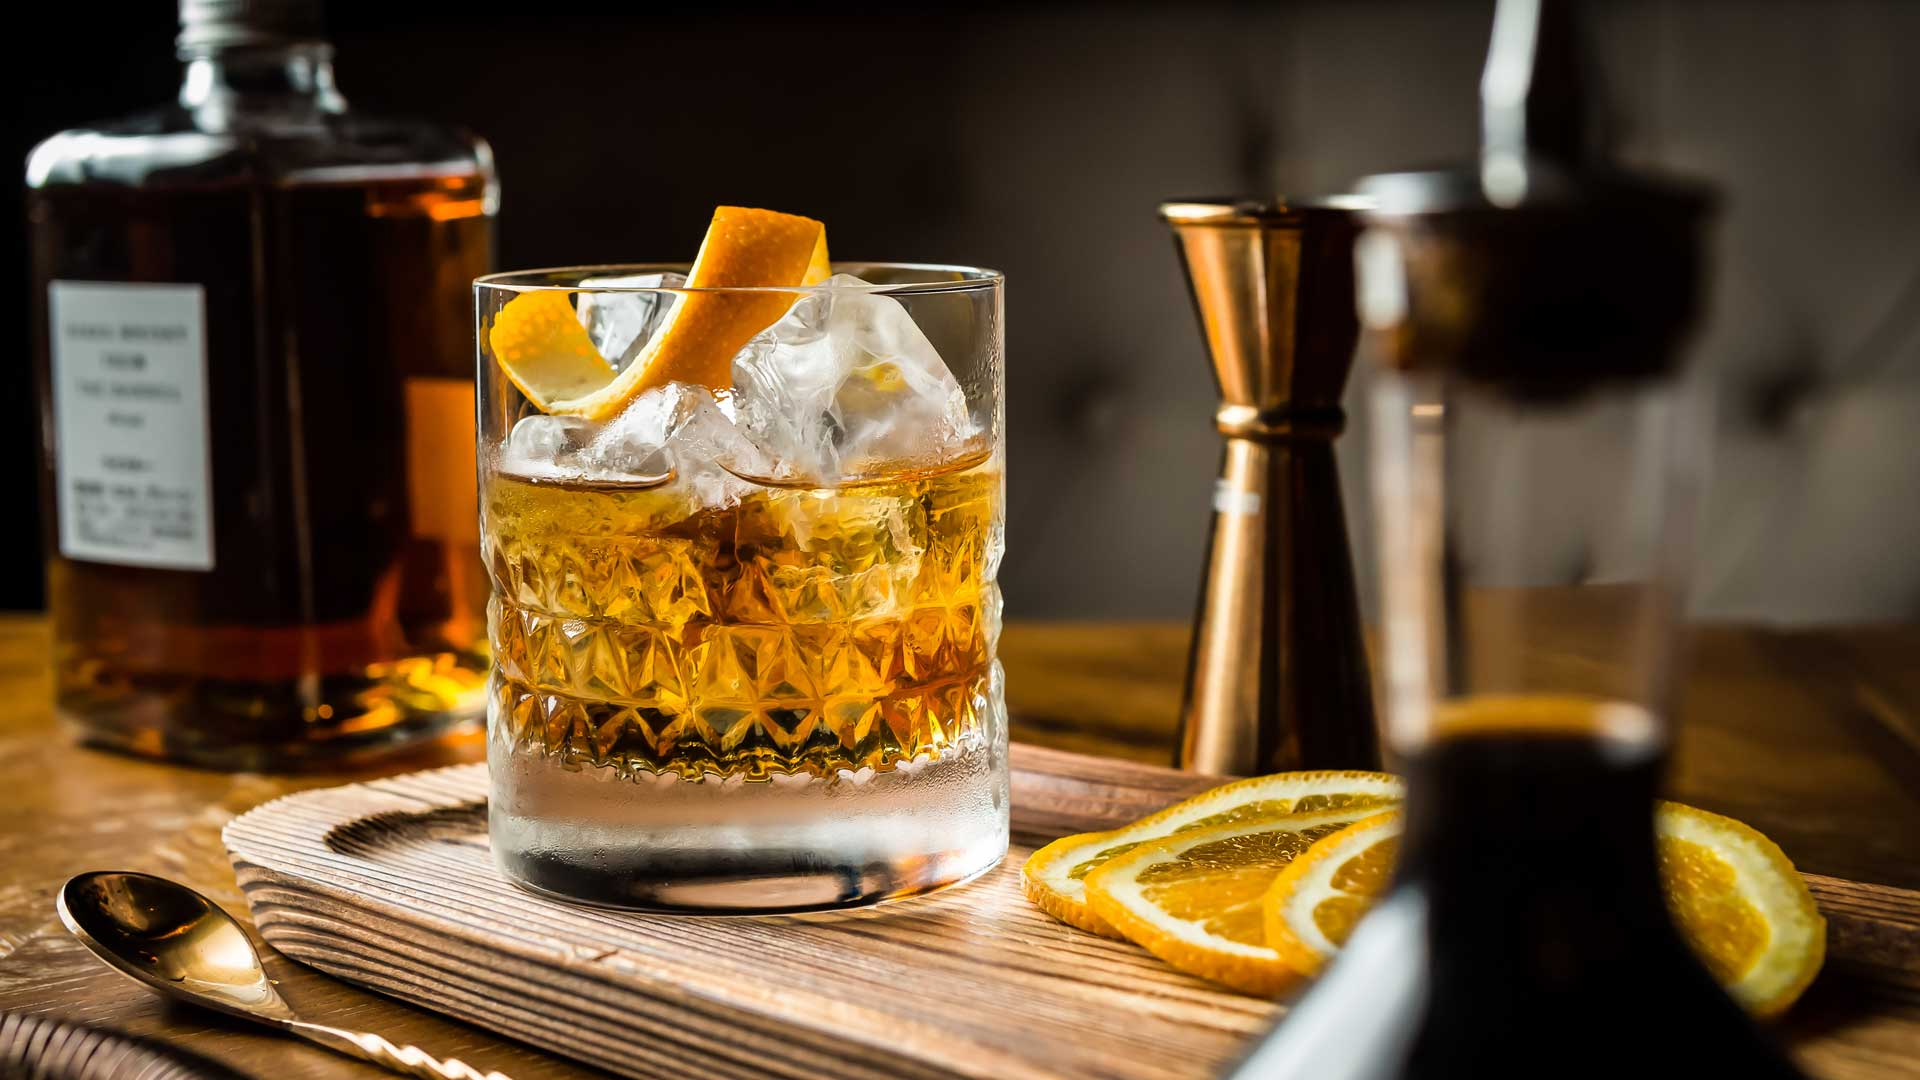 3-cocktail-giapponesi-ricette-ingredienti-Coqtail-Milano